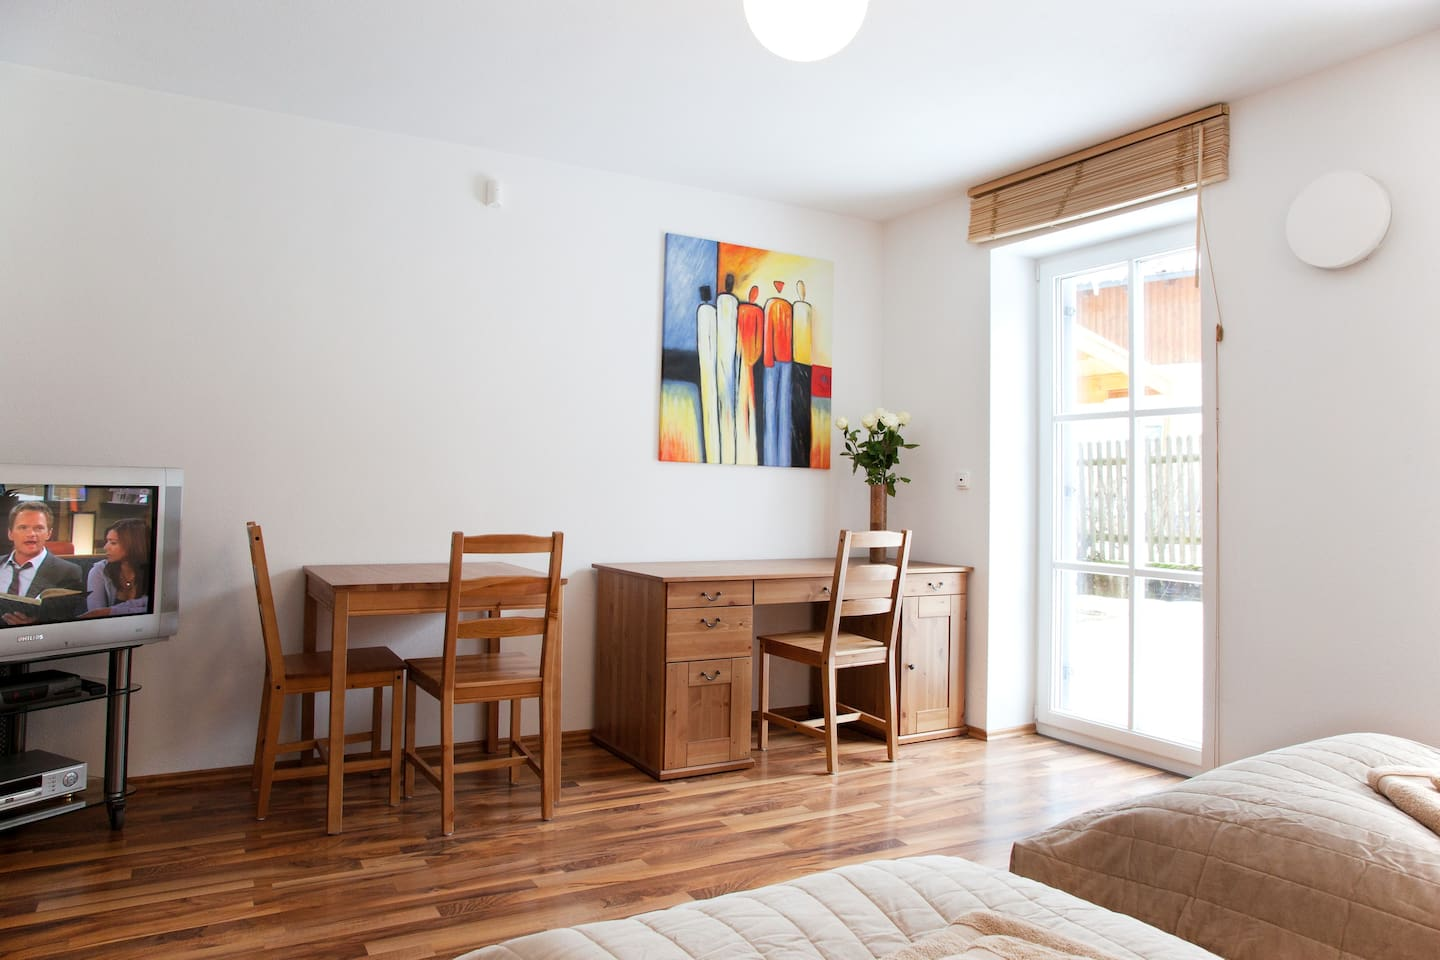 Nice flat in a comfortable house, 2-3 persons - Apartments for Rent ...